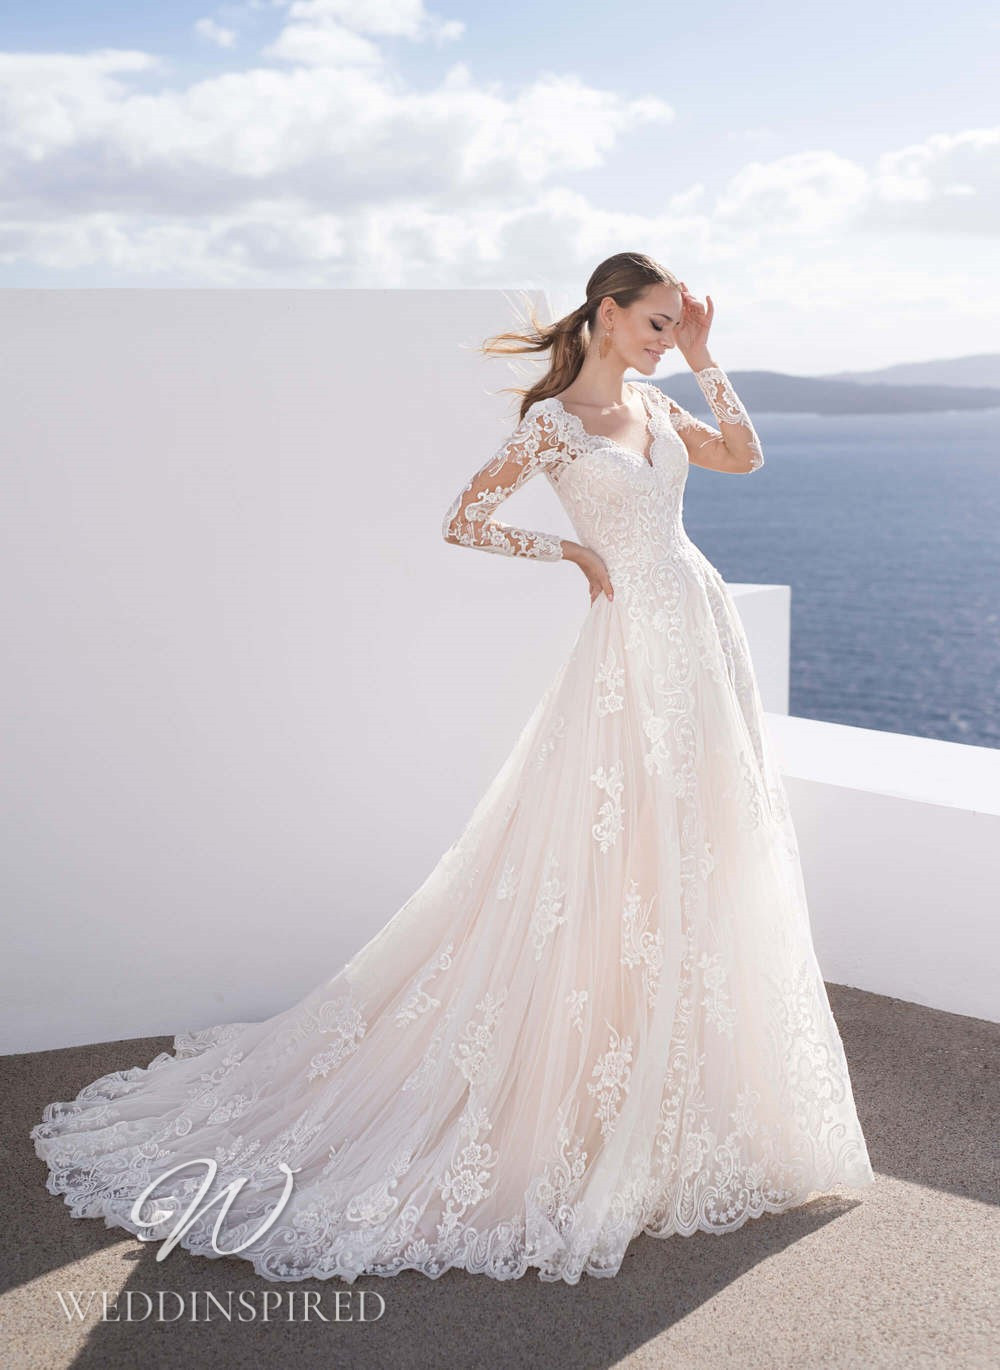 A Blunny 2021 lace A-line wedding dress with long sleeves